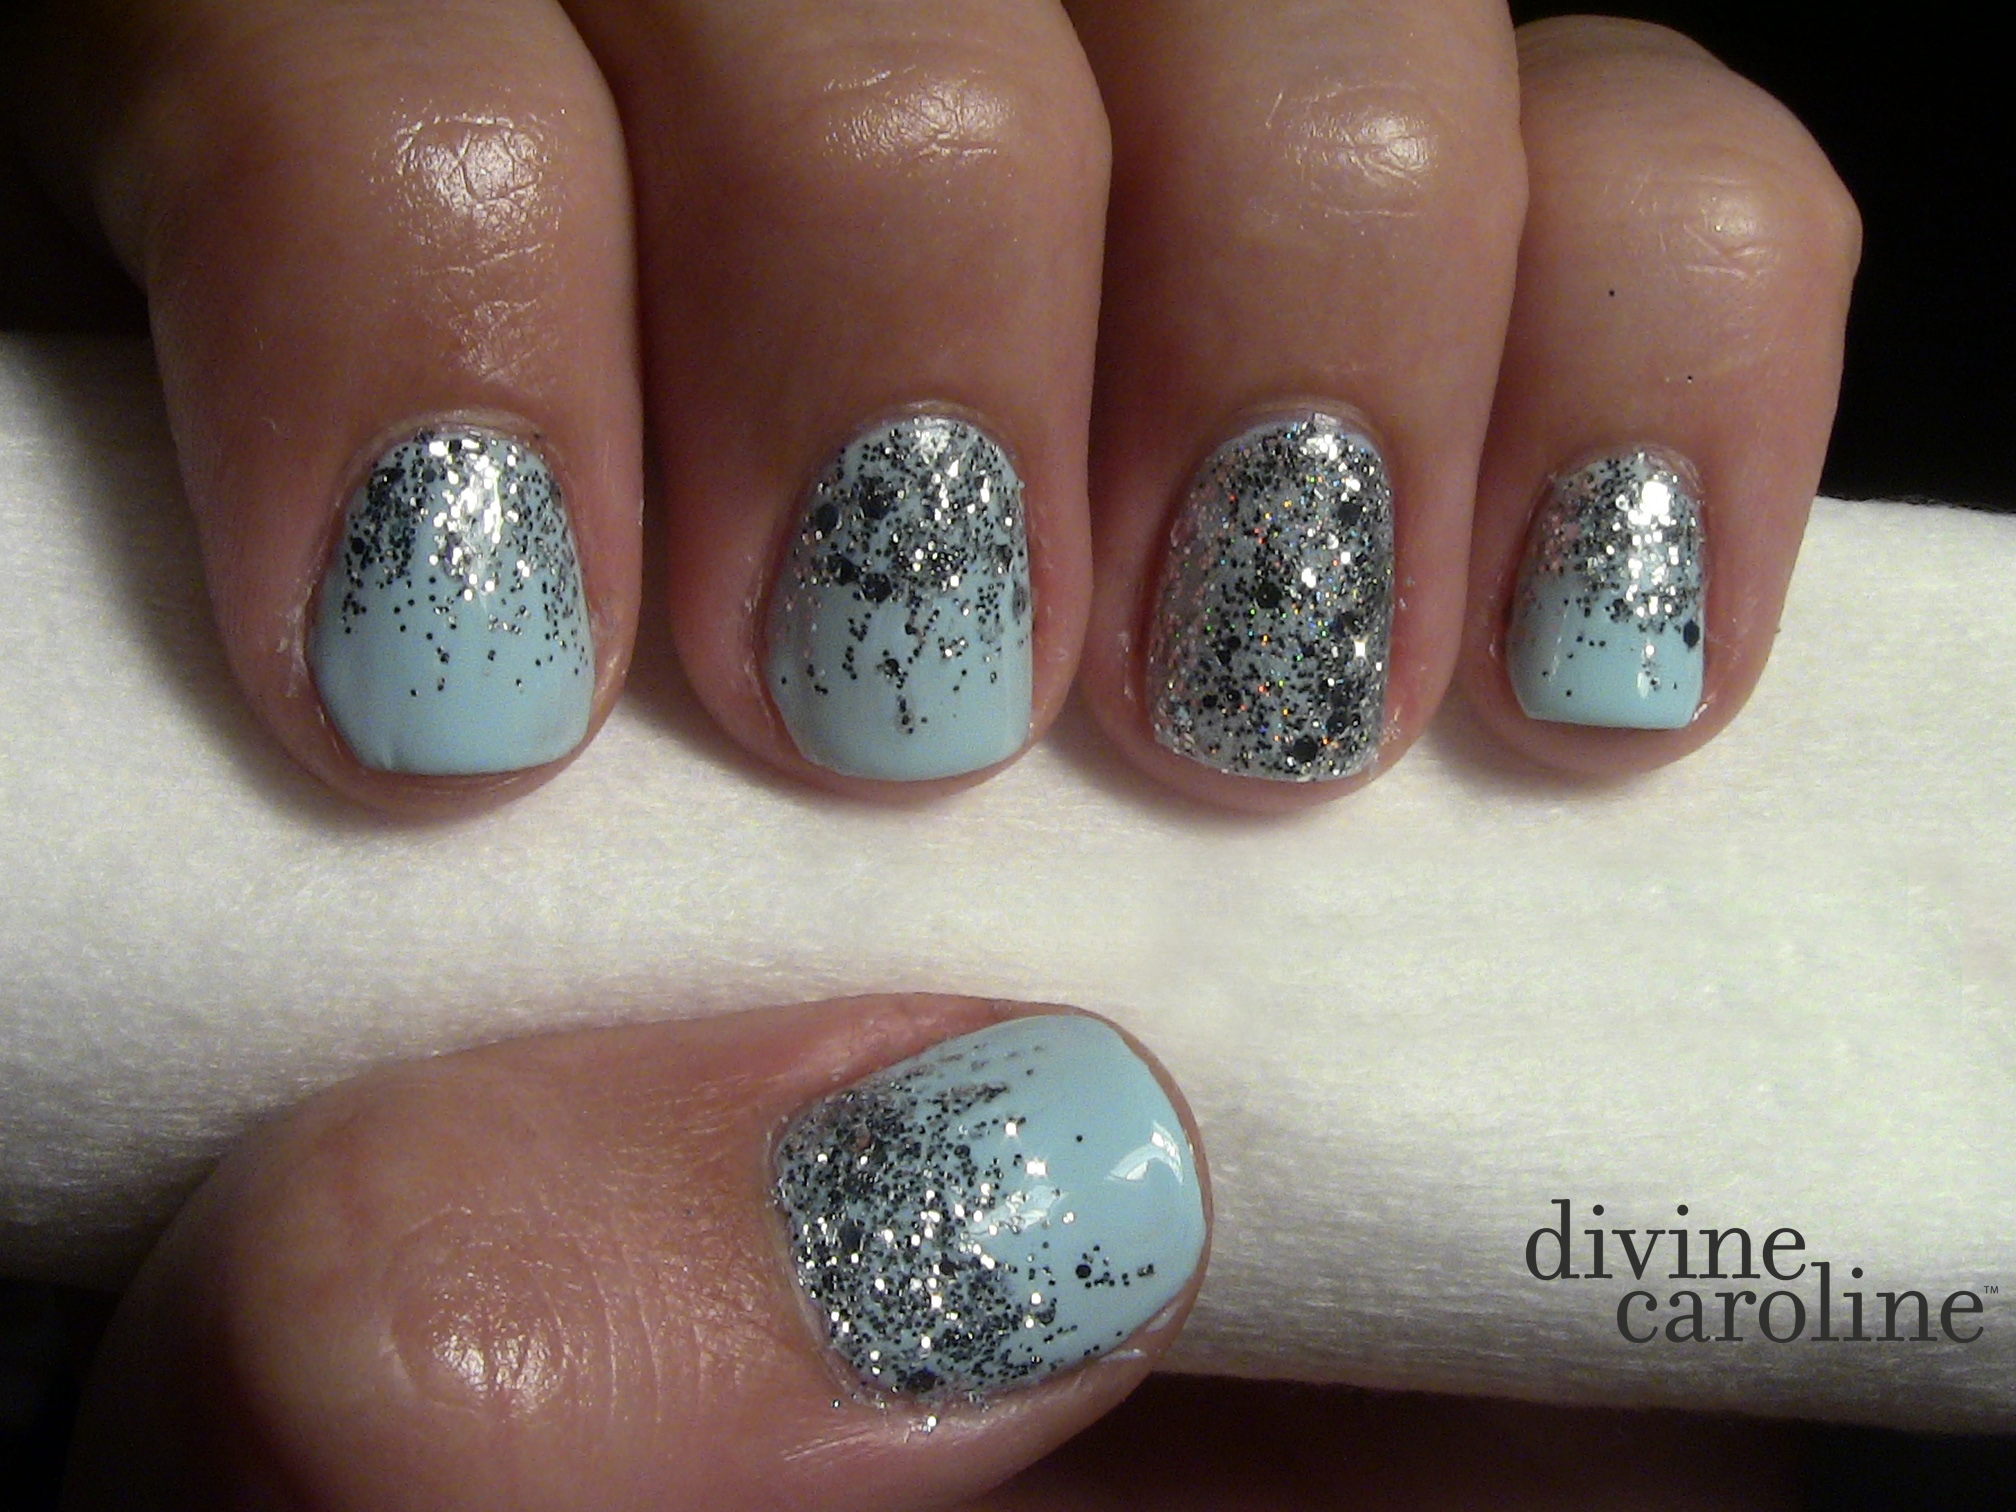 For This Design You Need A Basecoat Topcoat Polish Color And Glitter The Polishes I Used In Nail Art Are Orly Top Base Coat